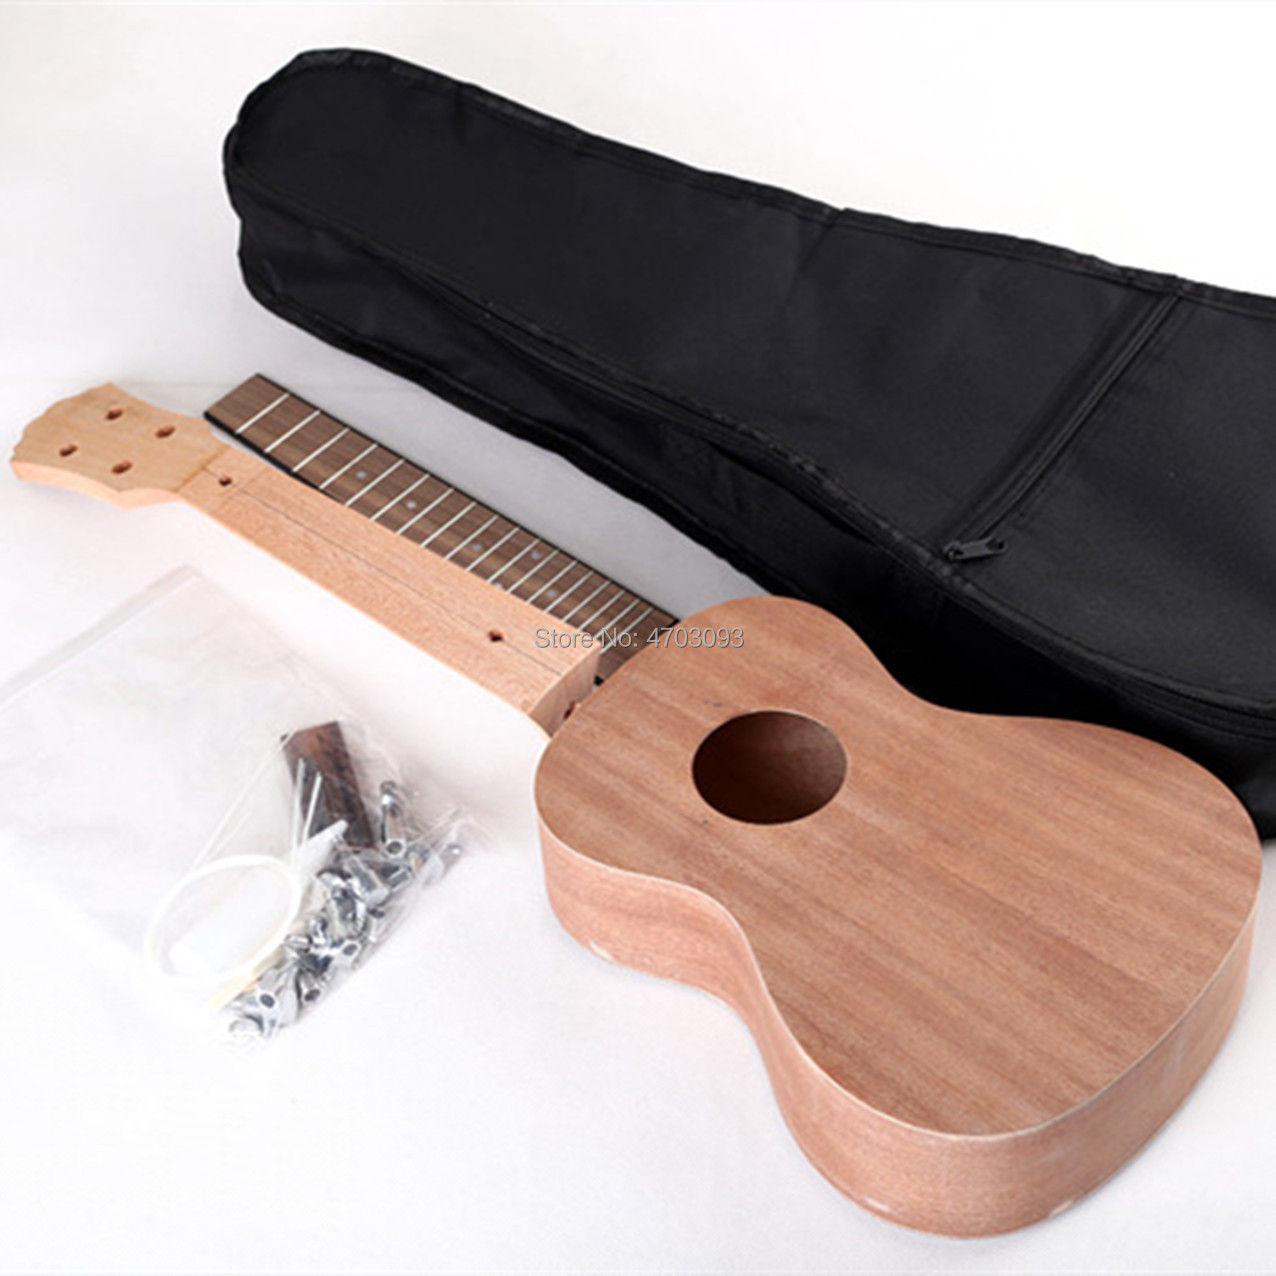 DIY Ukulele,Mahogany body,23 inches Acoustic Guitar,Rosewood Fretboard,Free Shipping(China)